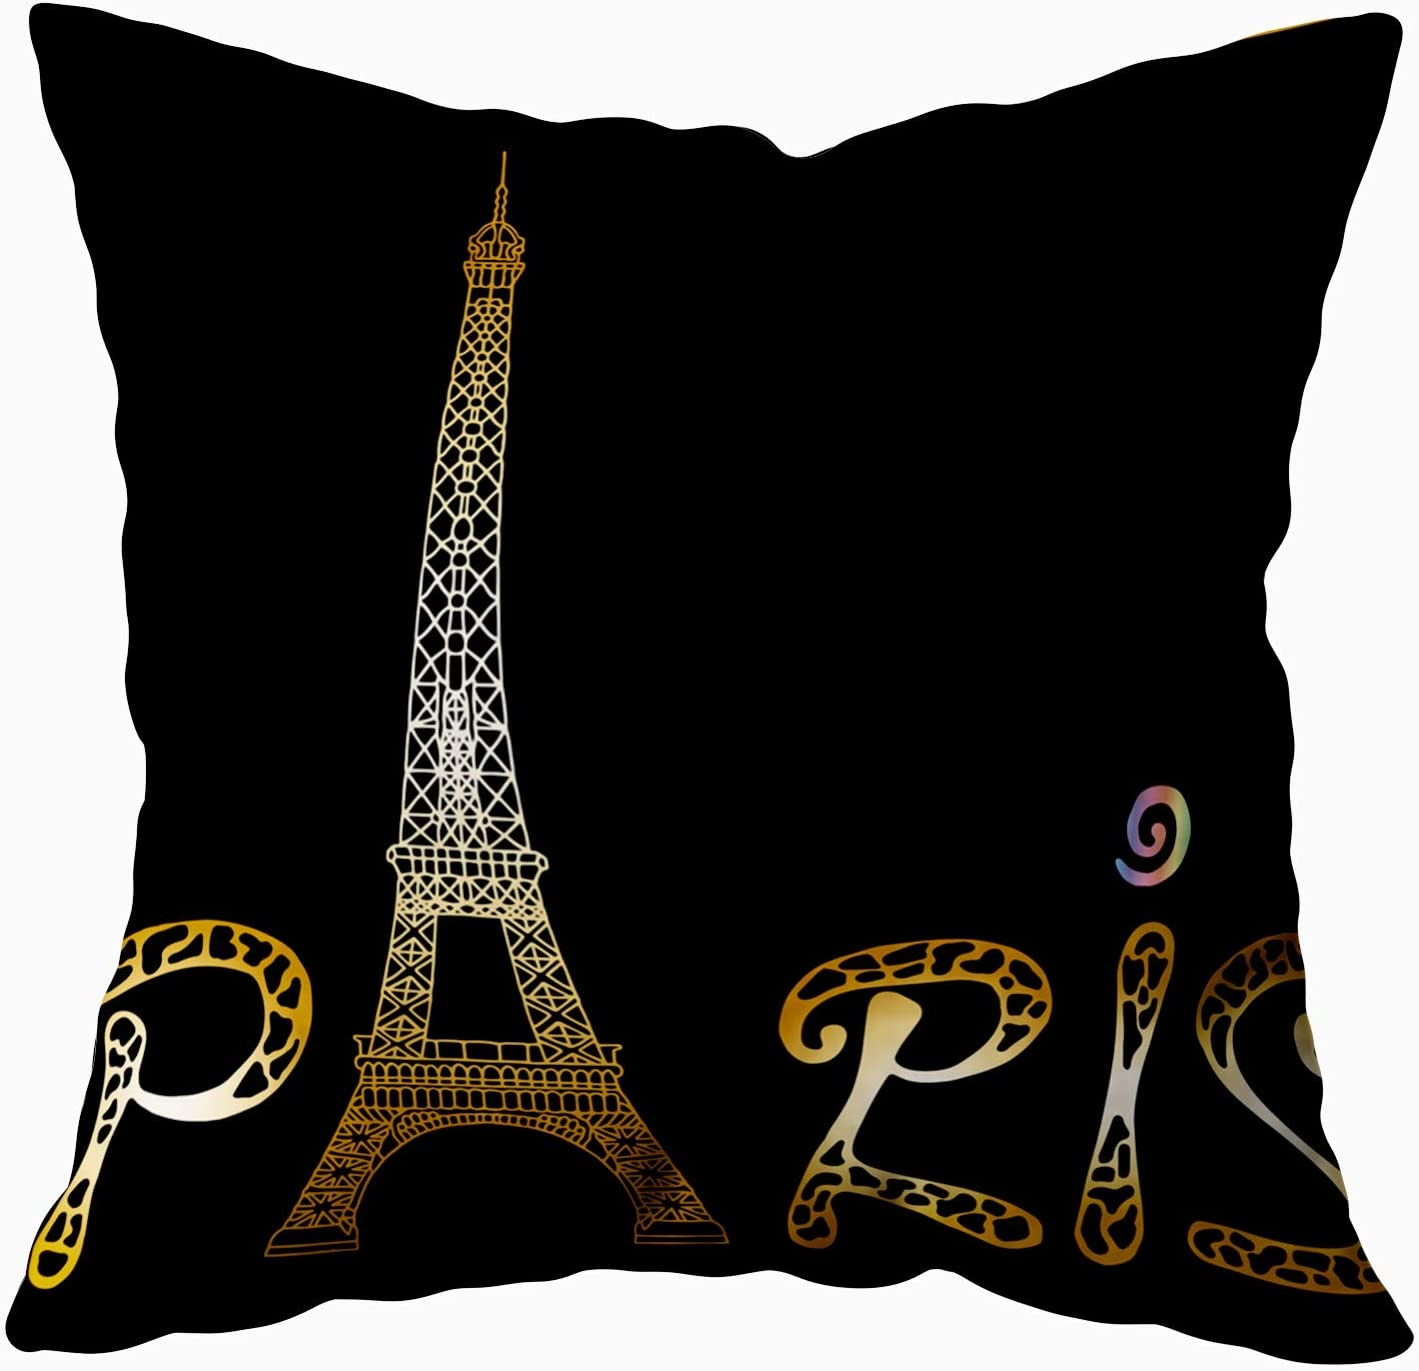 Capsceoll Art Pillow Case, Paris with Eiffel Tower and Drawing Sketch Raster Gold White Isolated 20x20 Pillow Covers,Home Decoration Pillow Cases Zippered Covers Cushion for Sofa Couch